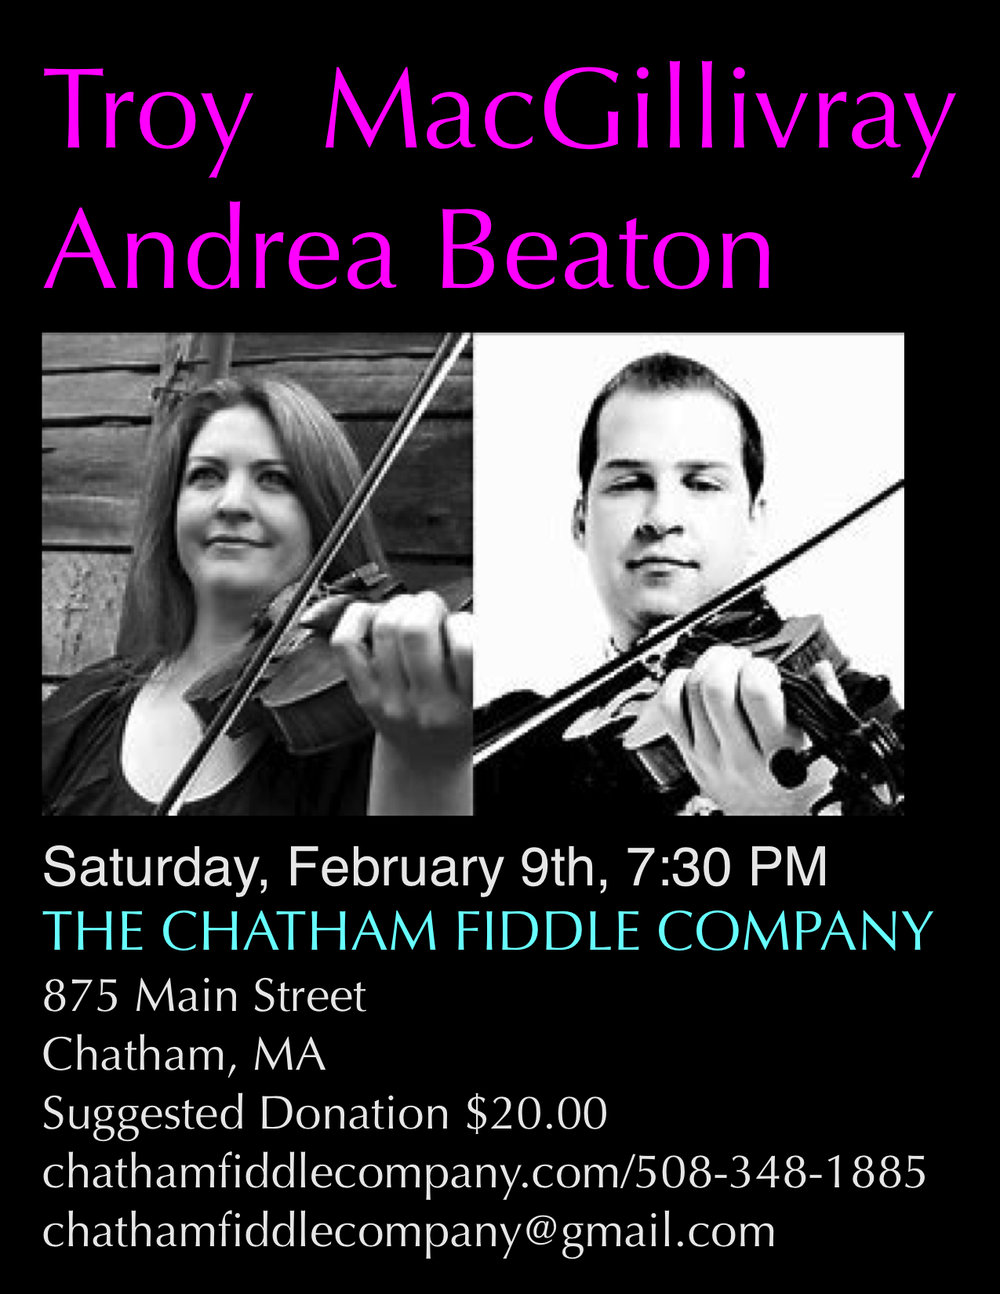 Don't miss this powerhouse duo in concert! Get your seats early. Always a great night with these two masterful fiddlers!